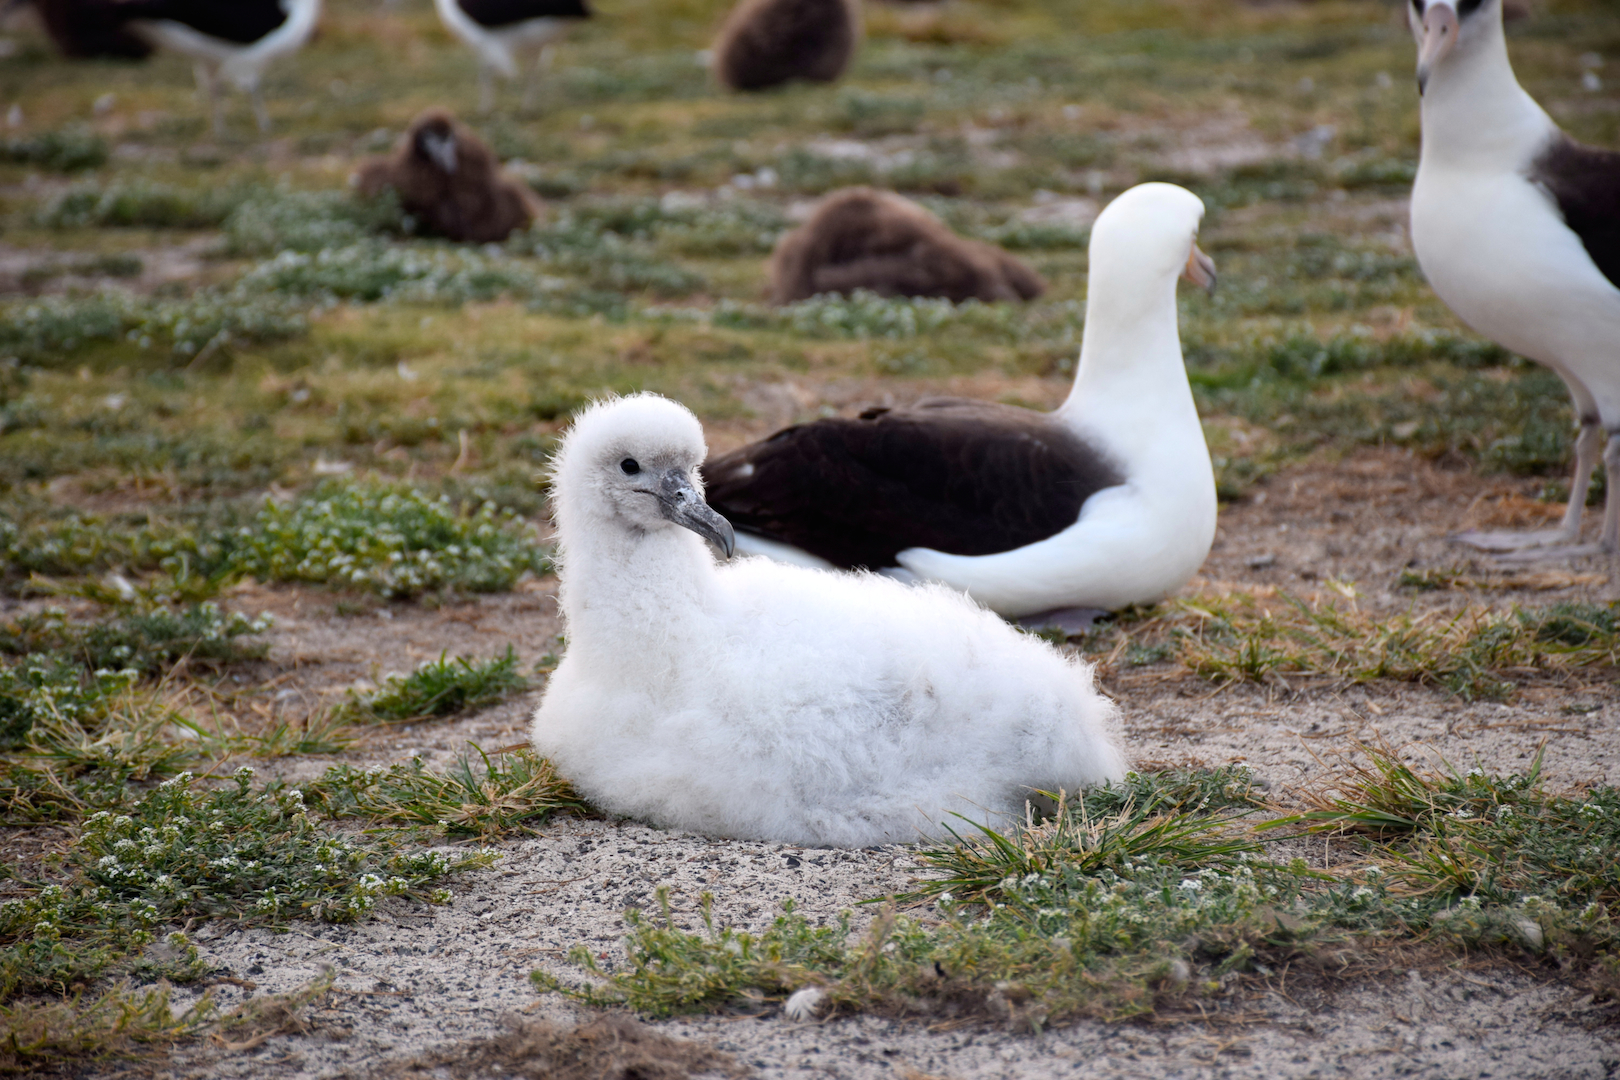 albino, albatross, white, rare, exotic, chick